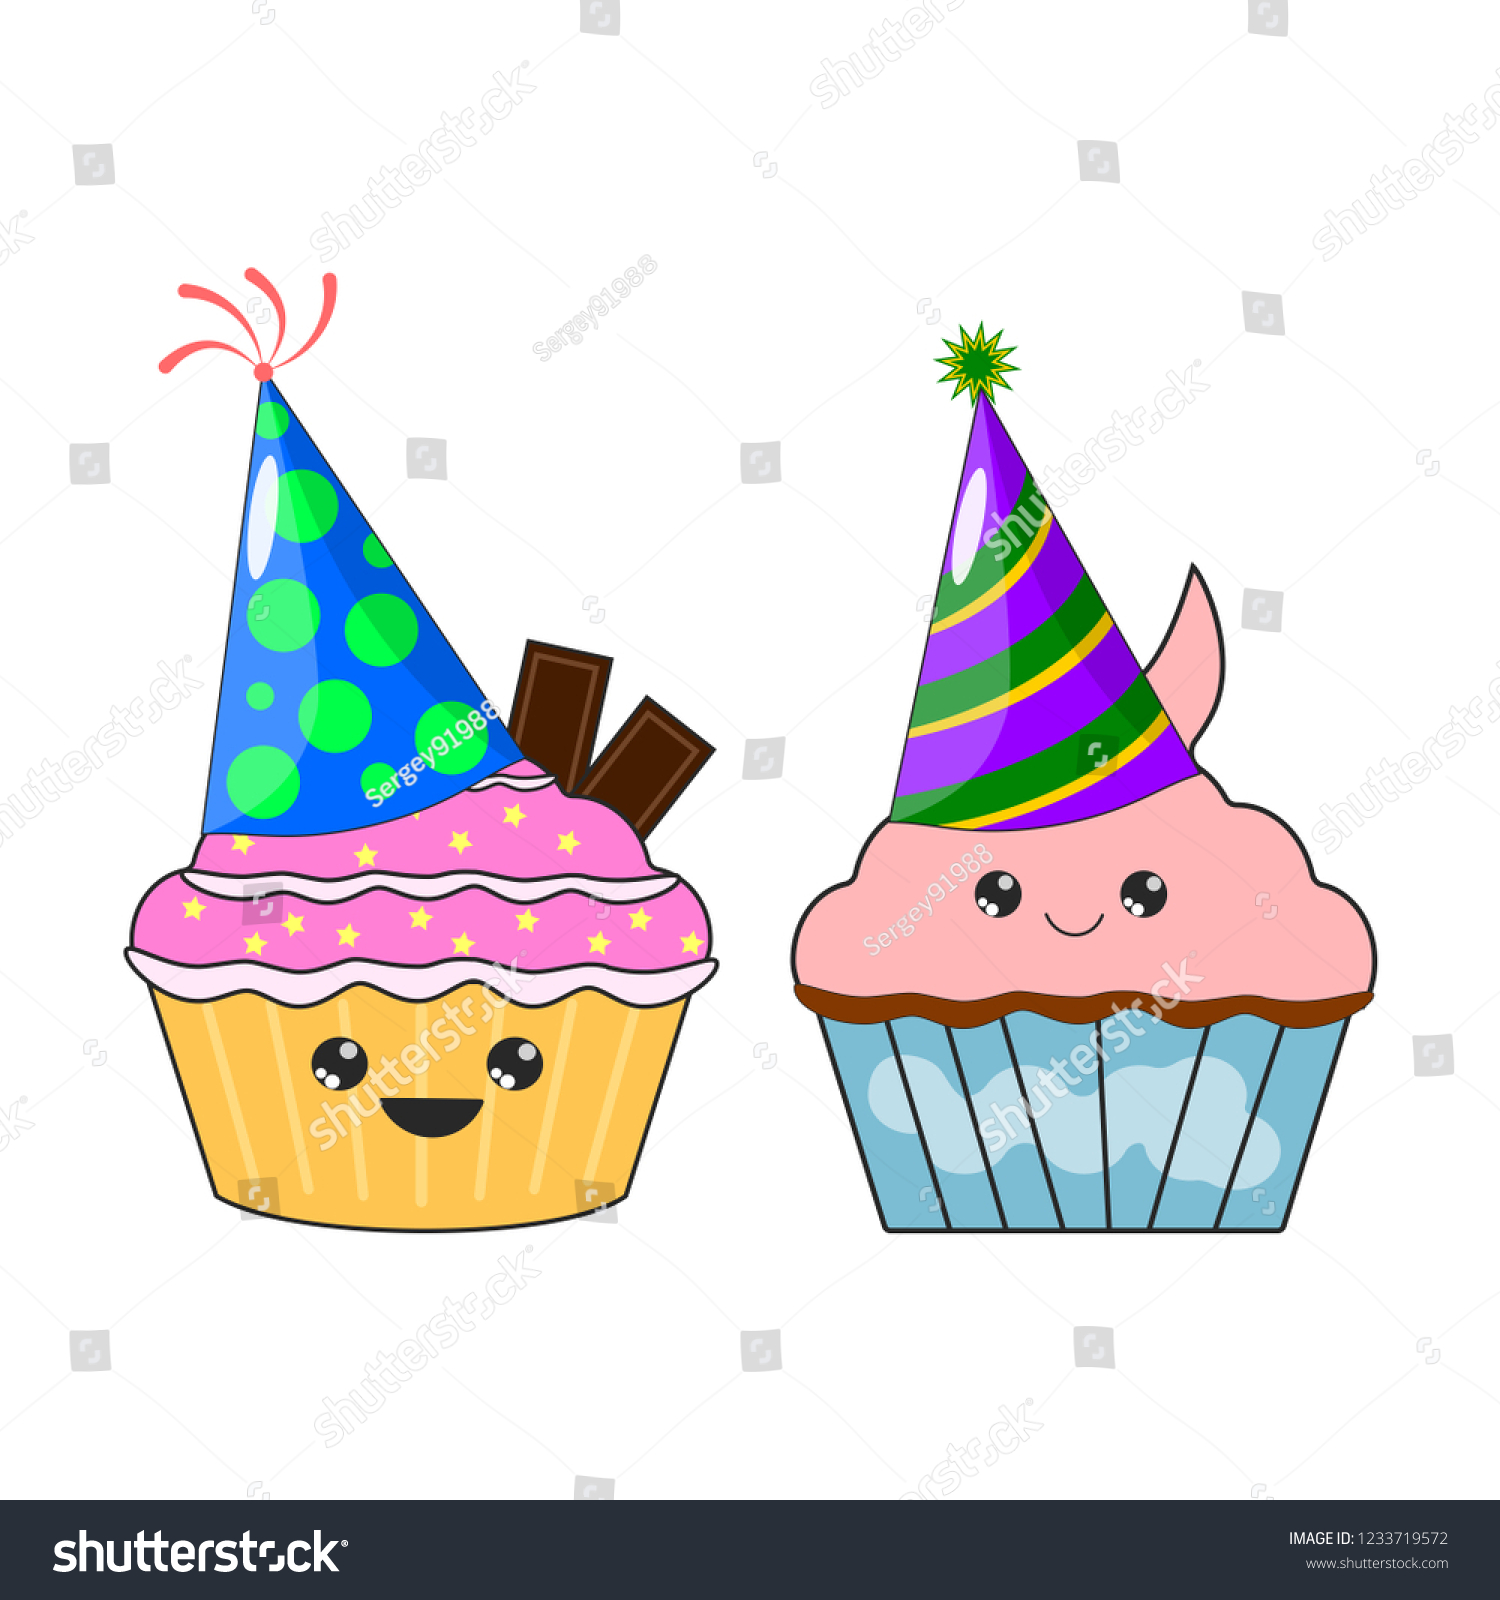 Stock Vector Set Of Yummy Kawaii Cake Muffin Sticker With Party Birthday Hat Isolated On White